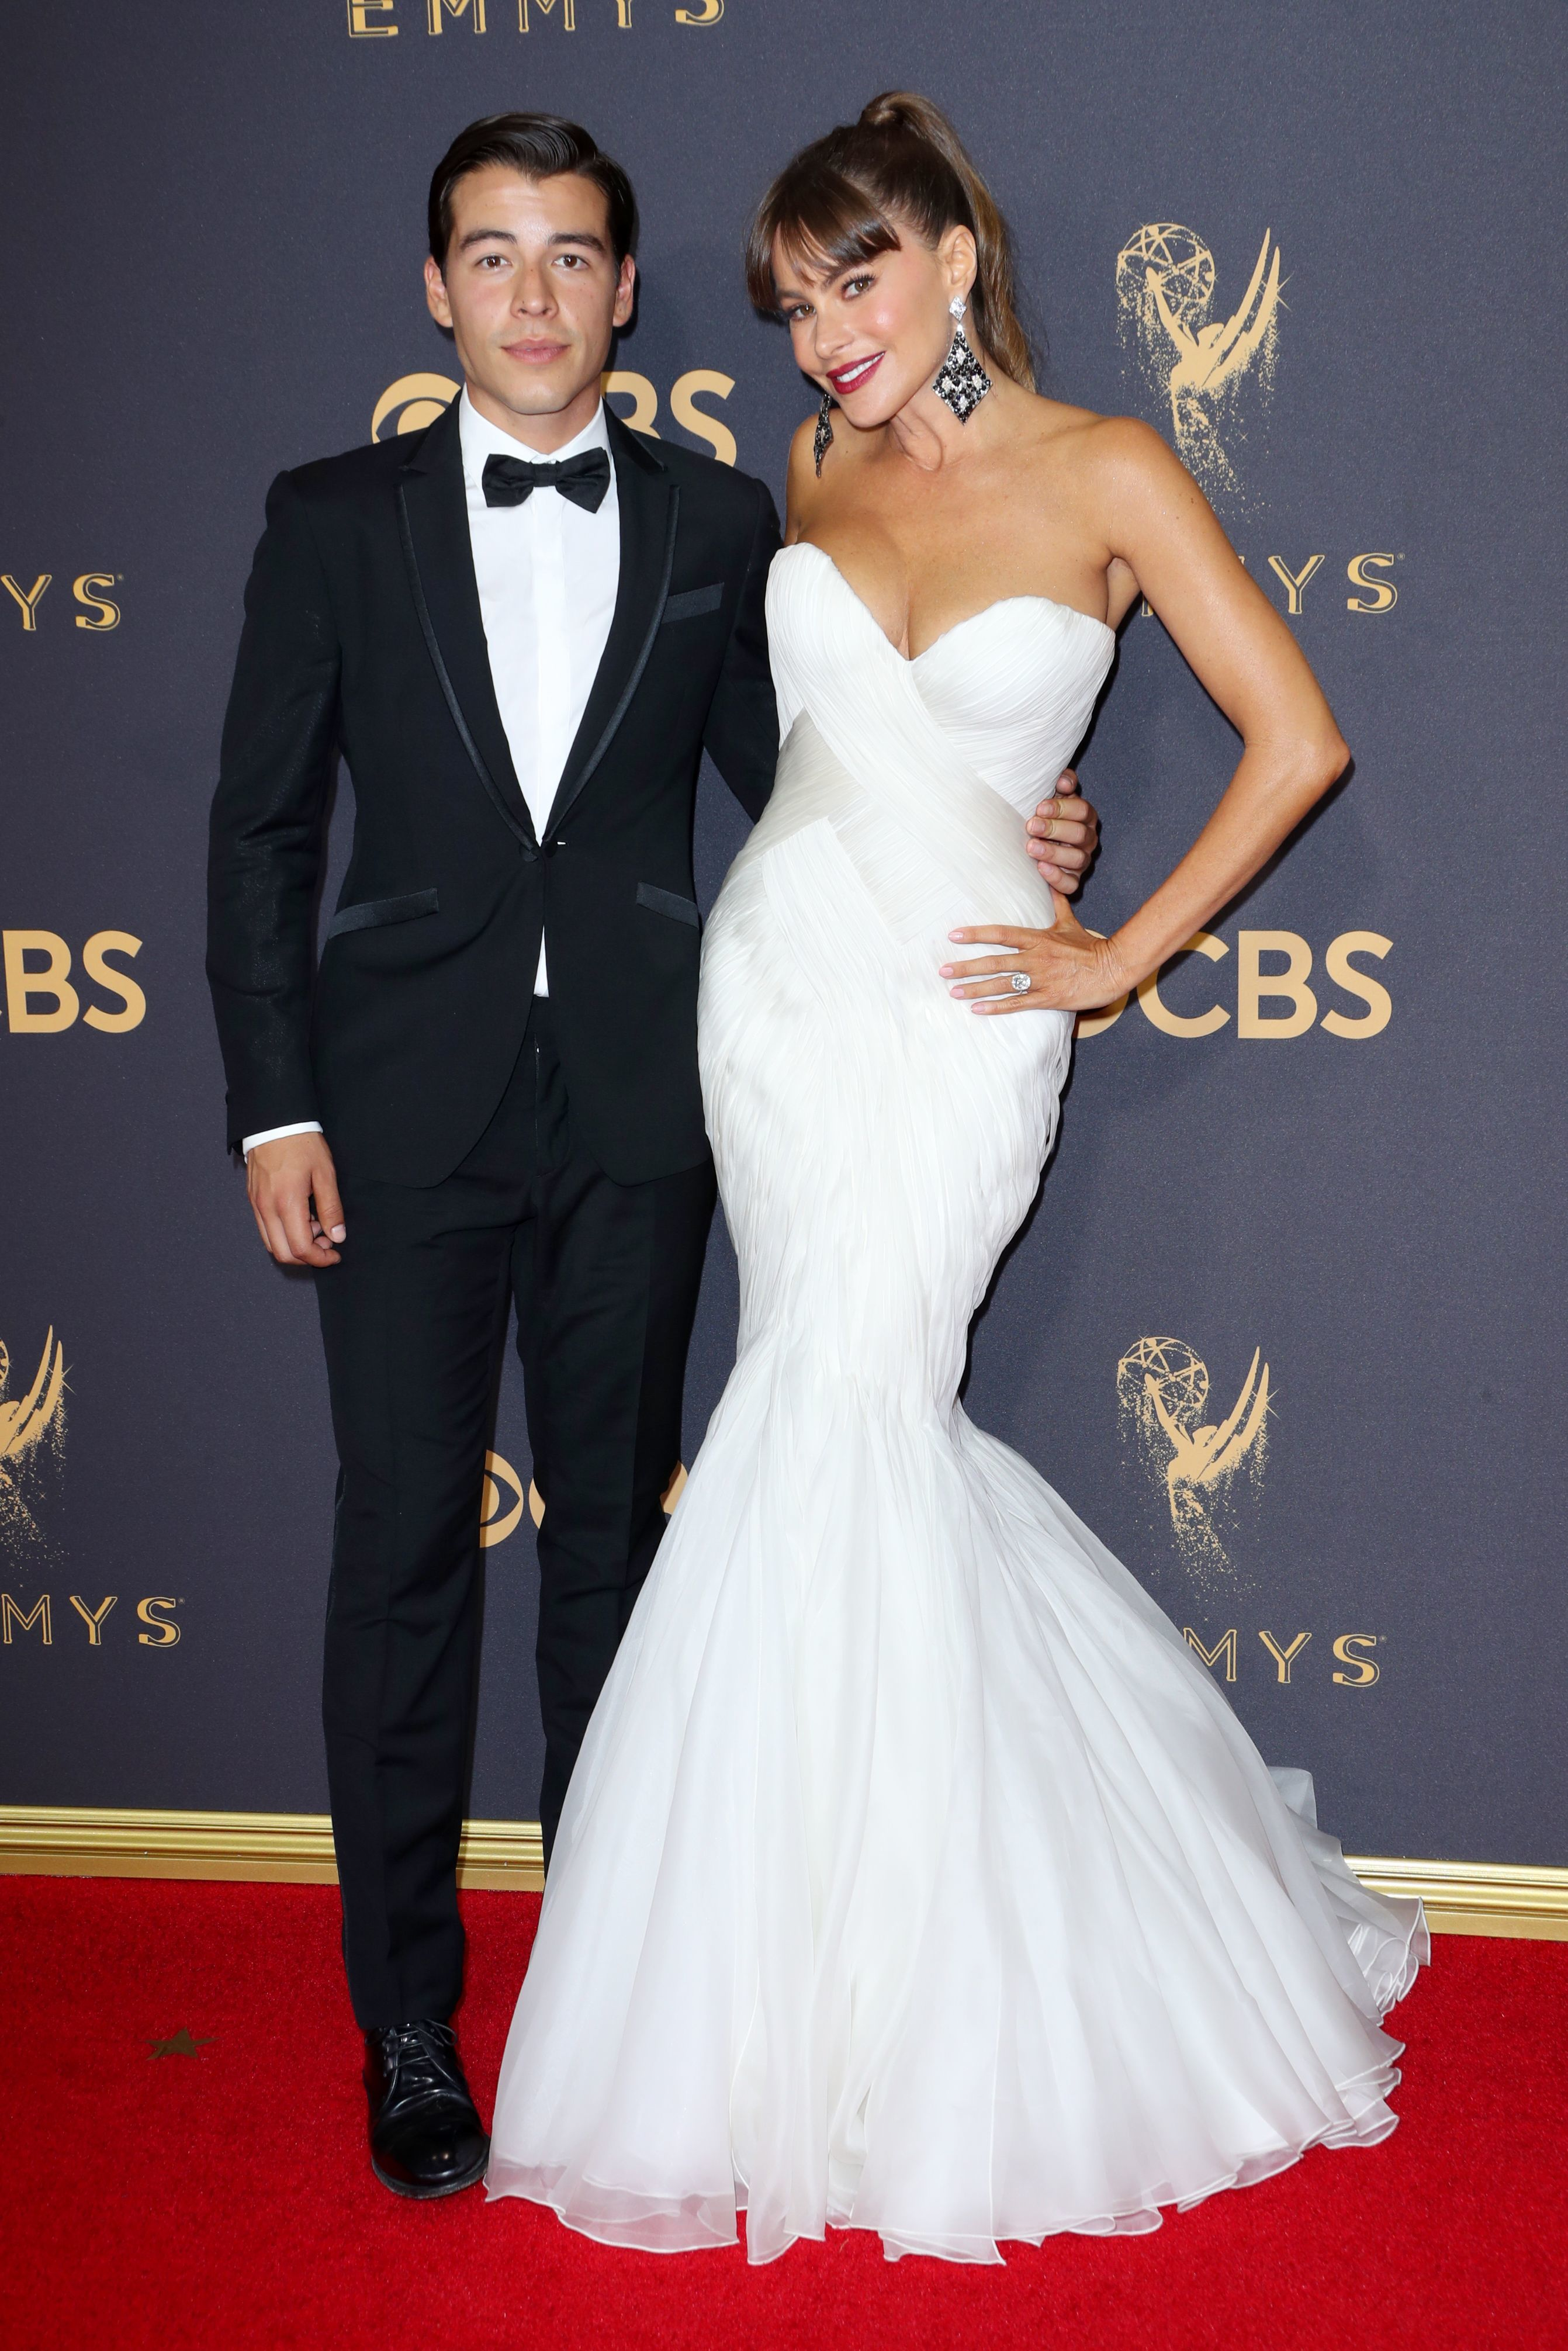 Sofia Vergara and her son, Manolo Gonzalez Ripoll Vergara, attend the 69th Primetime Emmy Awards at the Microsoft Theater in Los Angeles on Sept. 17, 2017.